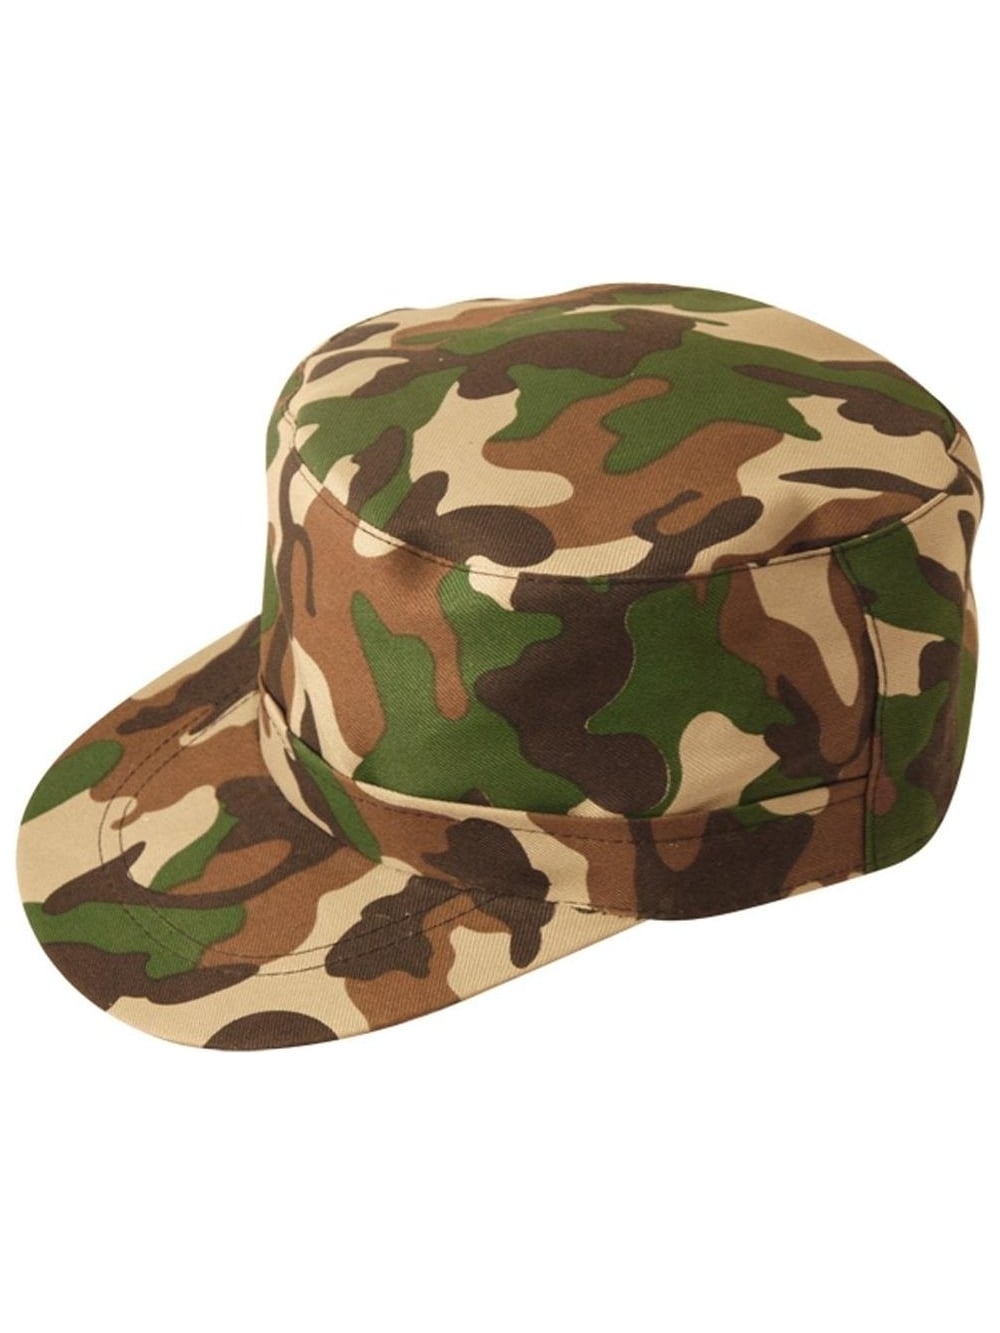 Value Camouflage Fancy Dress Army Hat  198e9cdf9d3